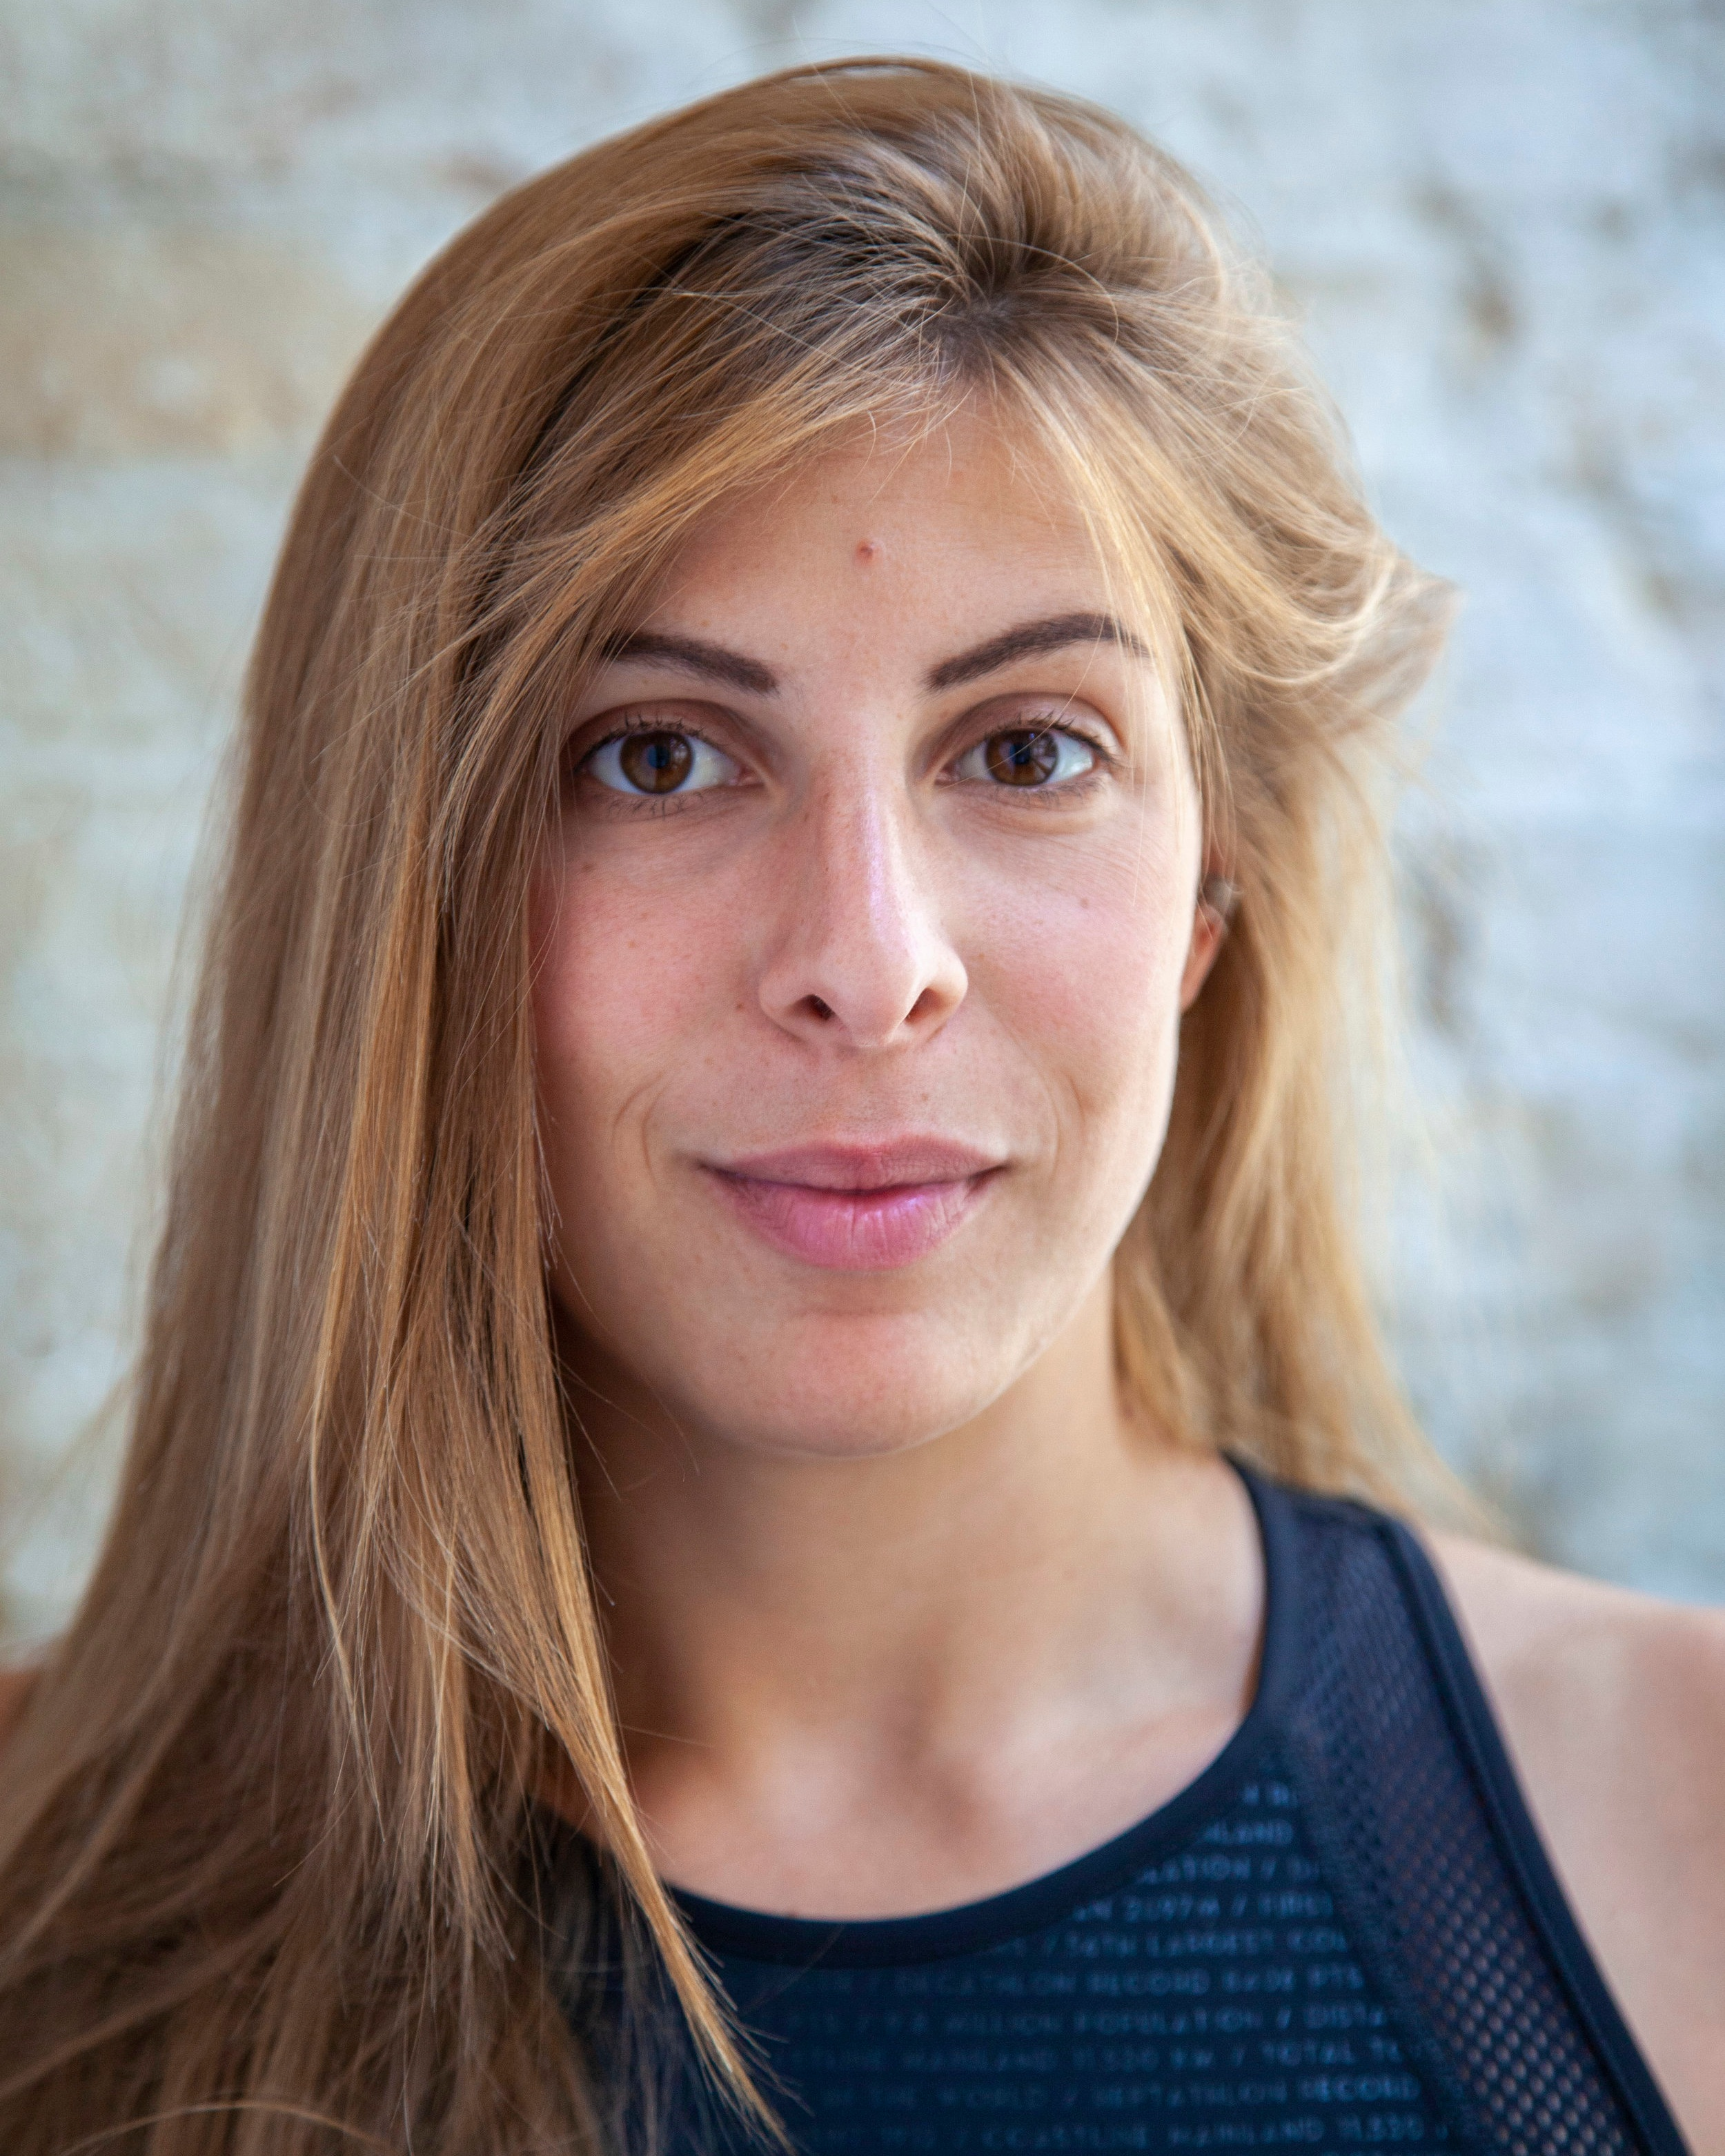 CARDIO-LOVING Carolin - Talk about sports-obsessed! When Carolin is not in the RIDE room she's training for a running race or triathlon. She loves the rush of endorphins when reaching the finish line, and brings that same taste of competition to her class. Expect deep house and techno beats, and get ready to sweat!